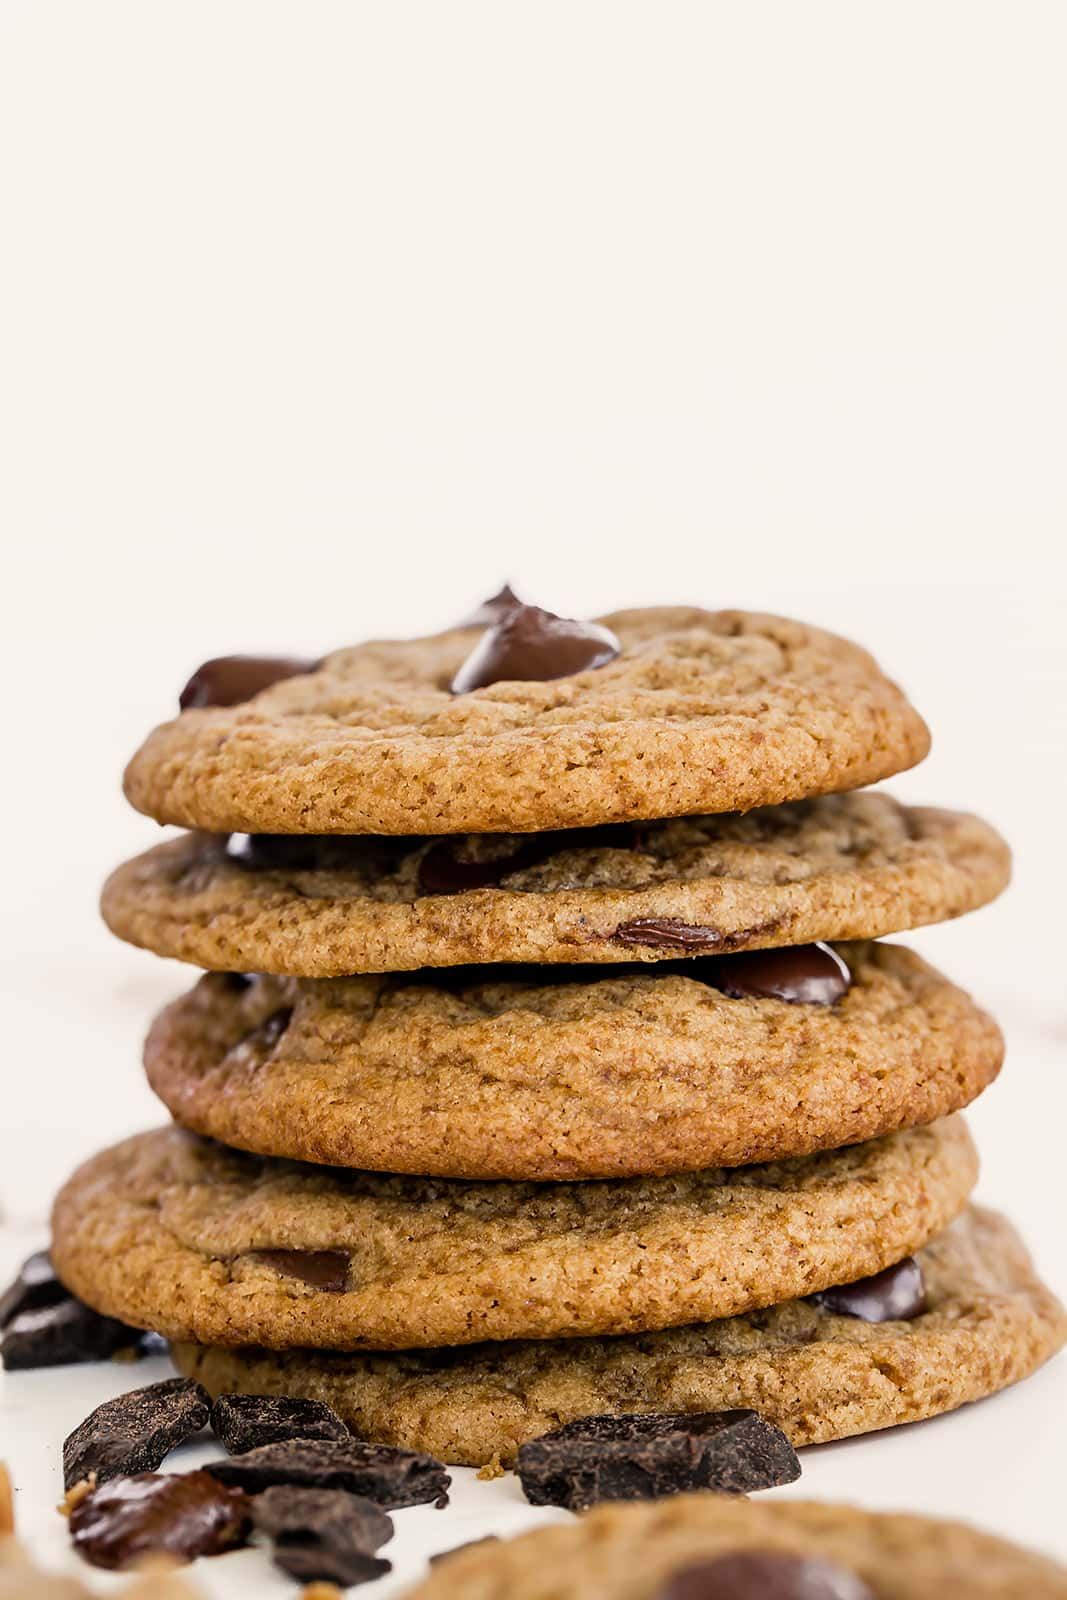 Healthy Chocolate Chip Cookies are dairy free and made with whole wheat flour and coconut sugar but taste just as good! Easy 20 minute recipe.